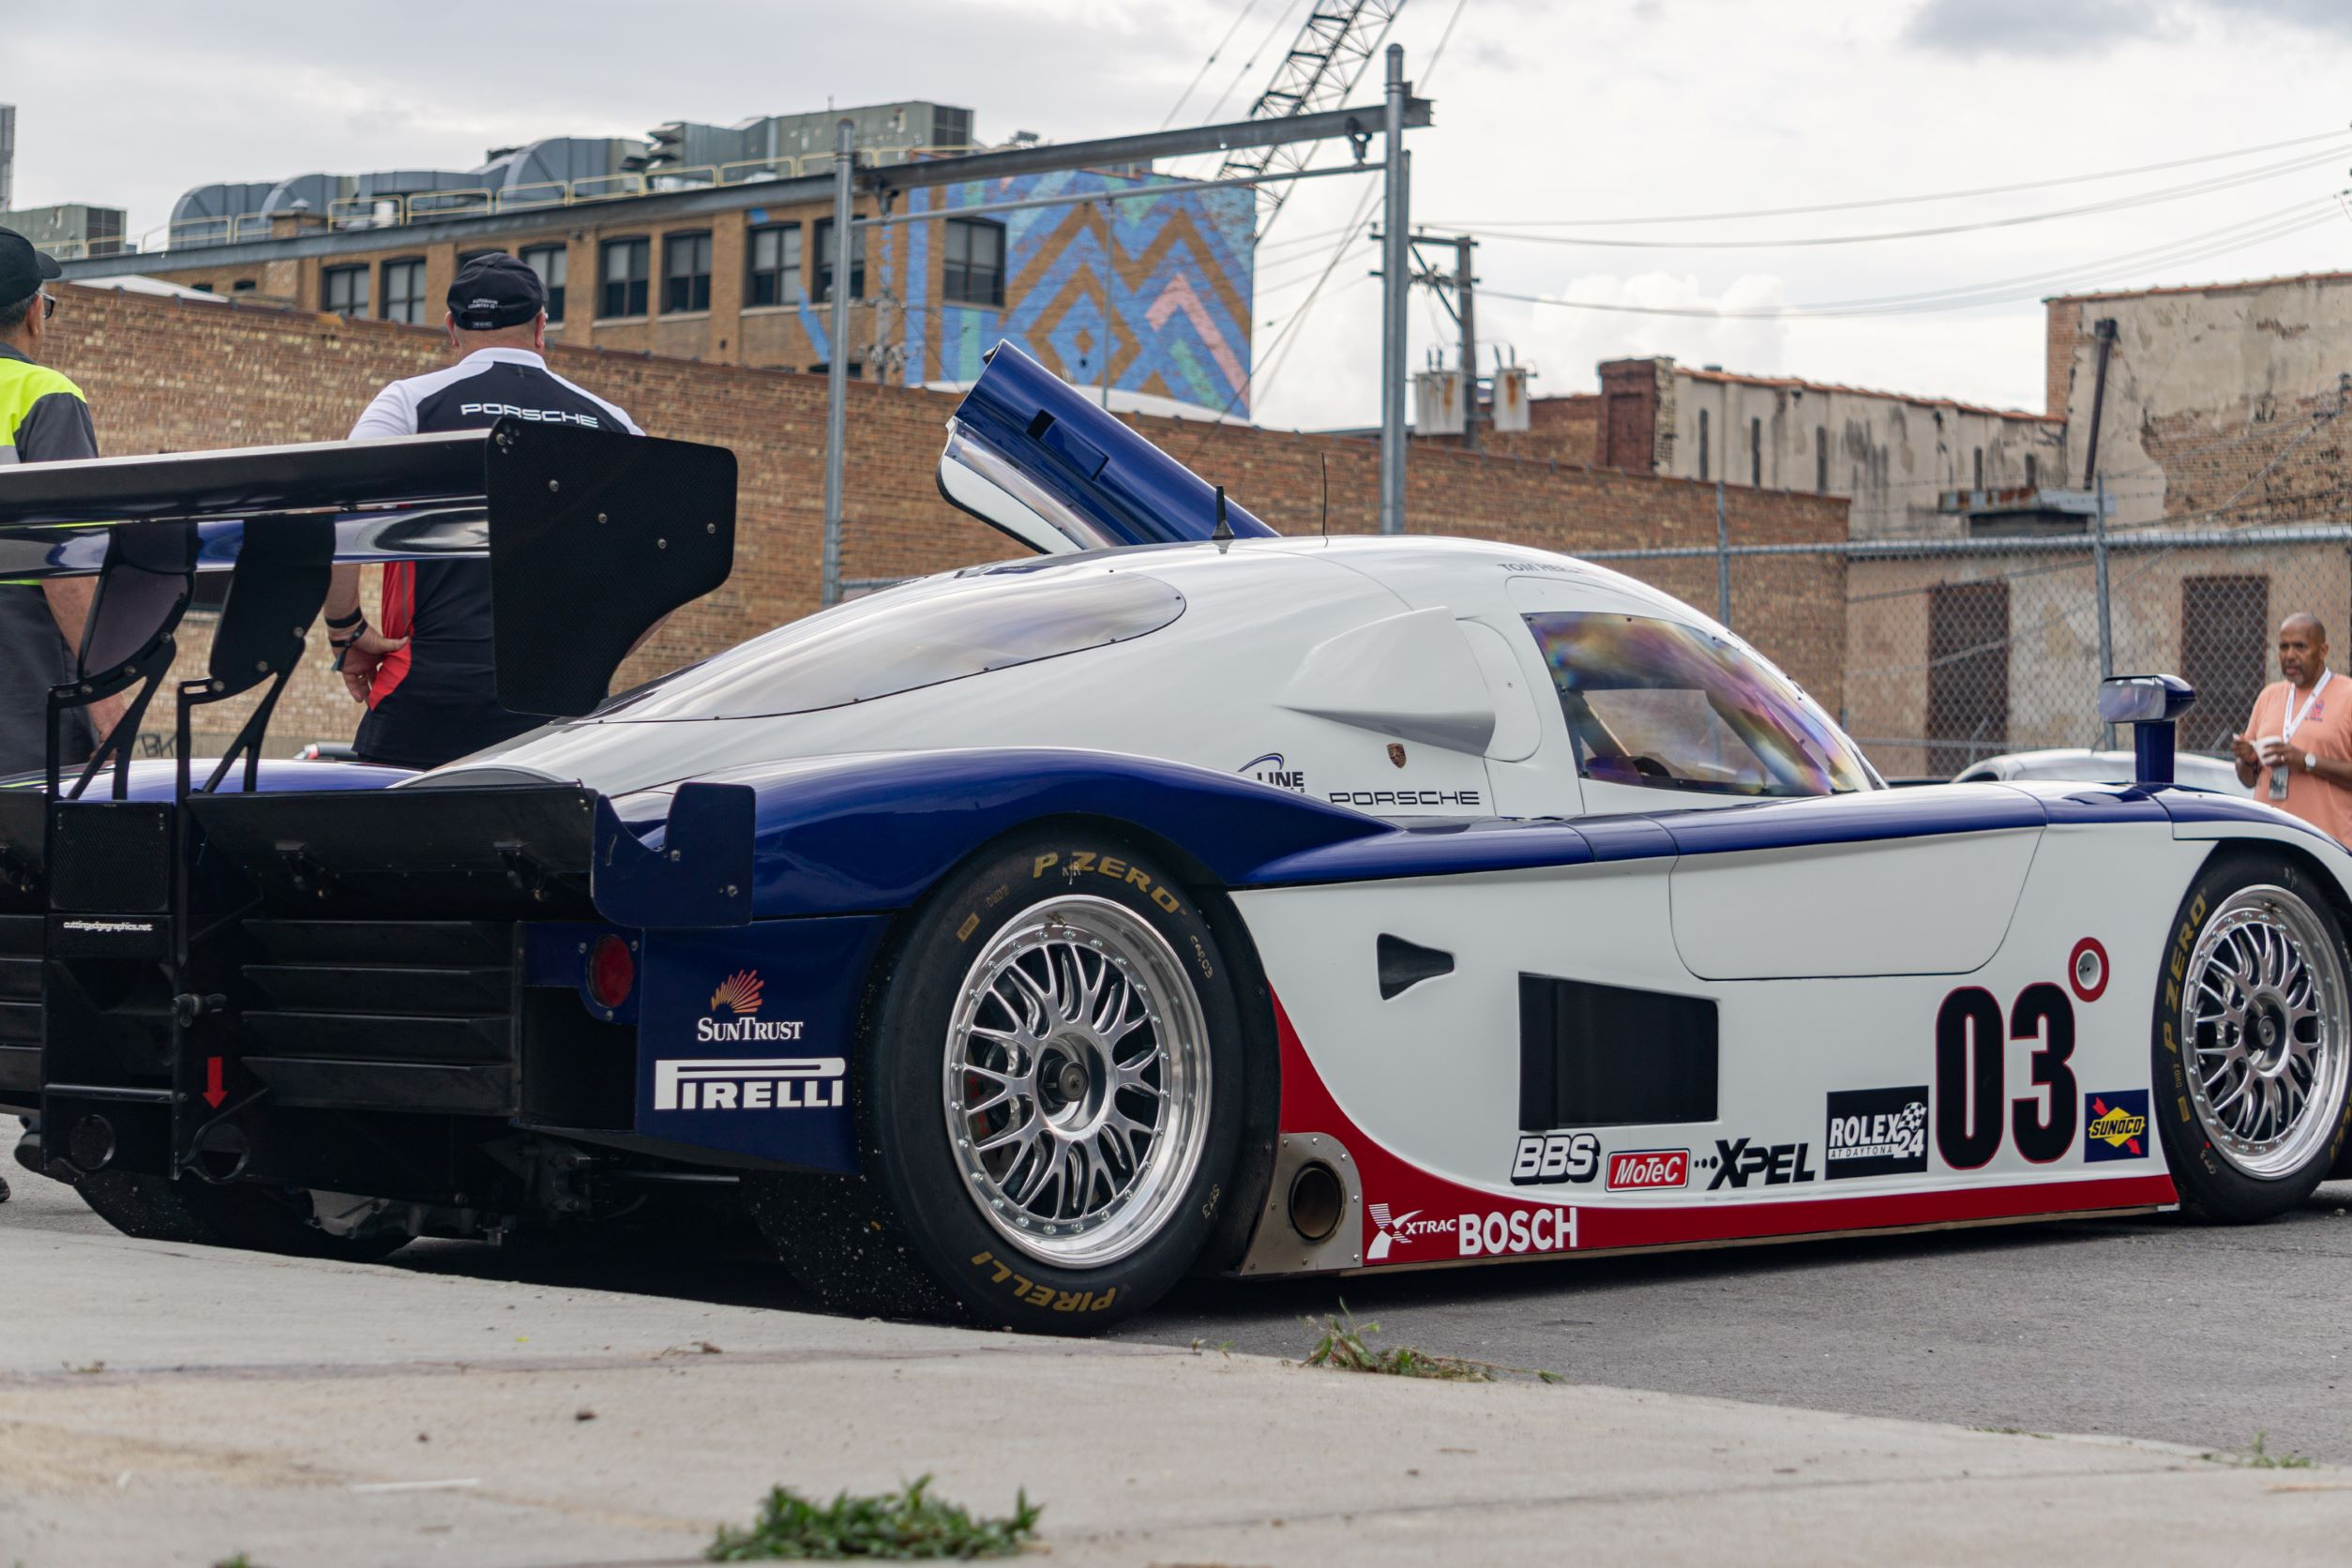 The side 3/4 view of a white-blue-and-red Fall-Line Motorsports' Porsche Crawford Daytona Prototype